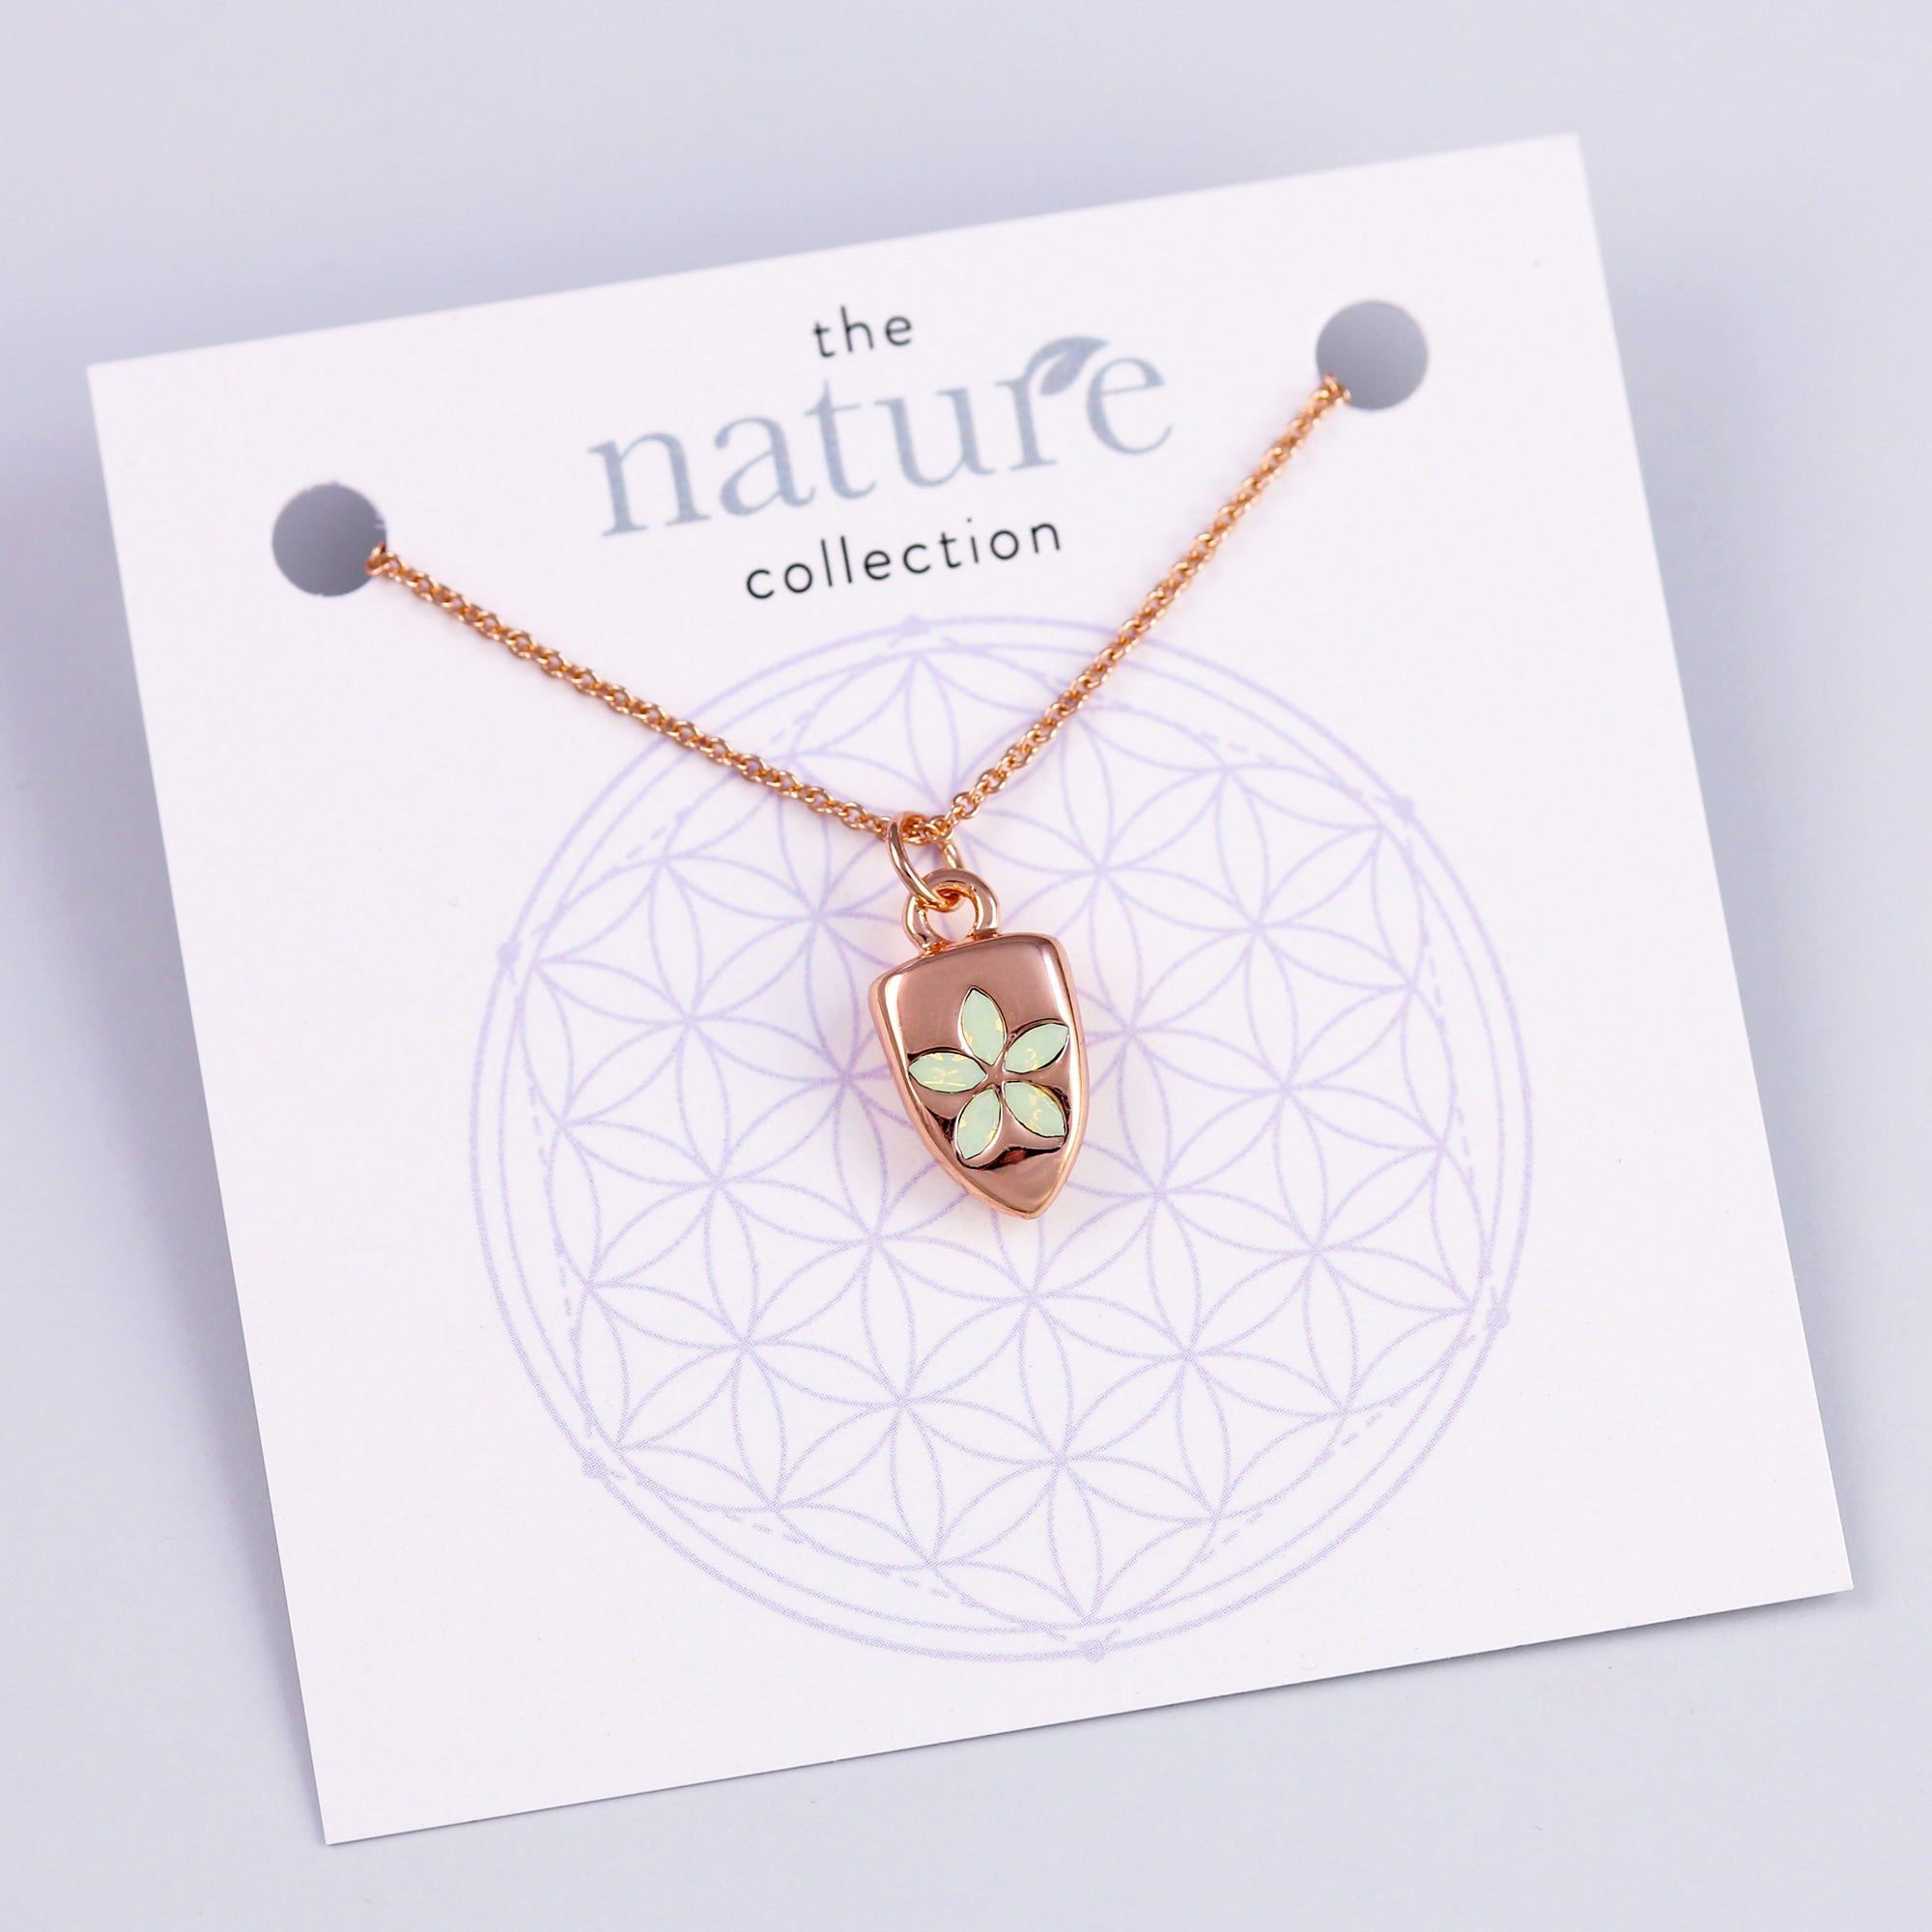 Rose Gold Green Flower Necklace Nature Collection